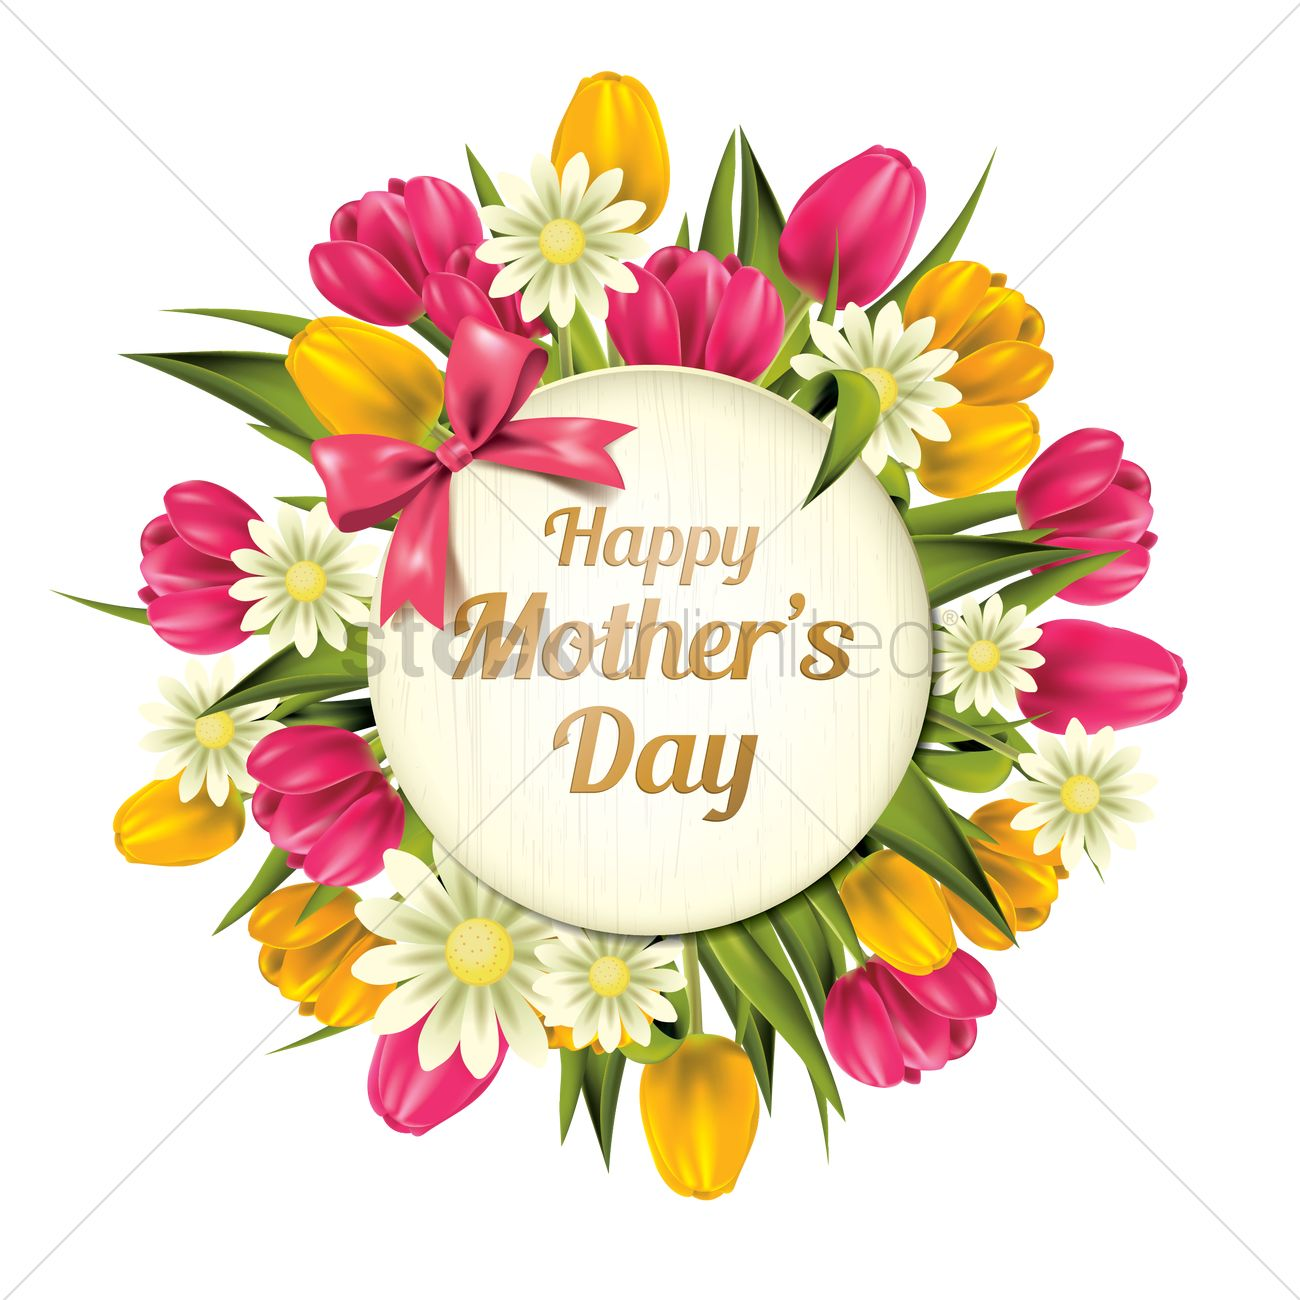 happy mothers day vector image 1807710 stockunlimited mother's day clip art mother day clip art free